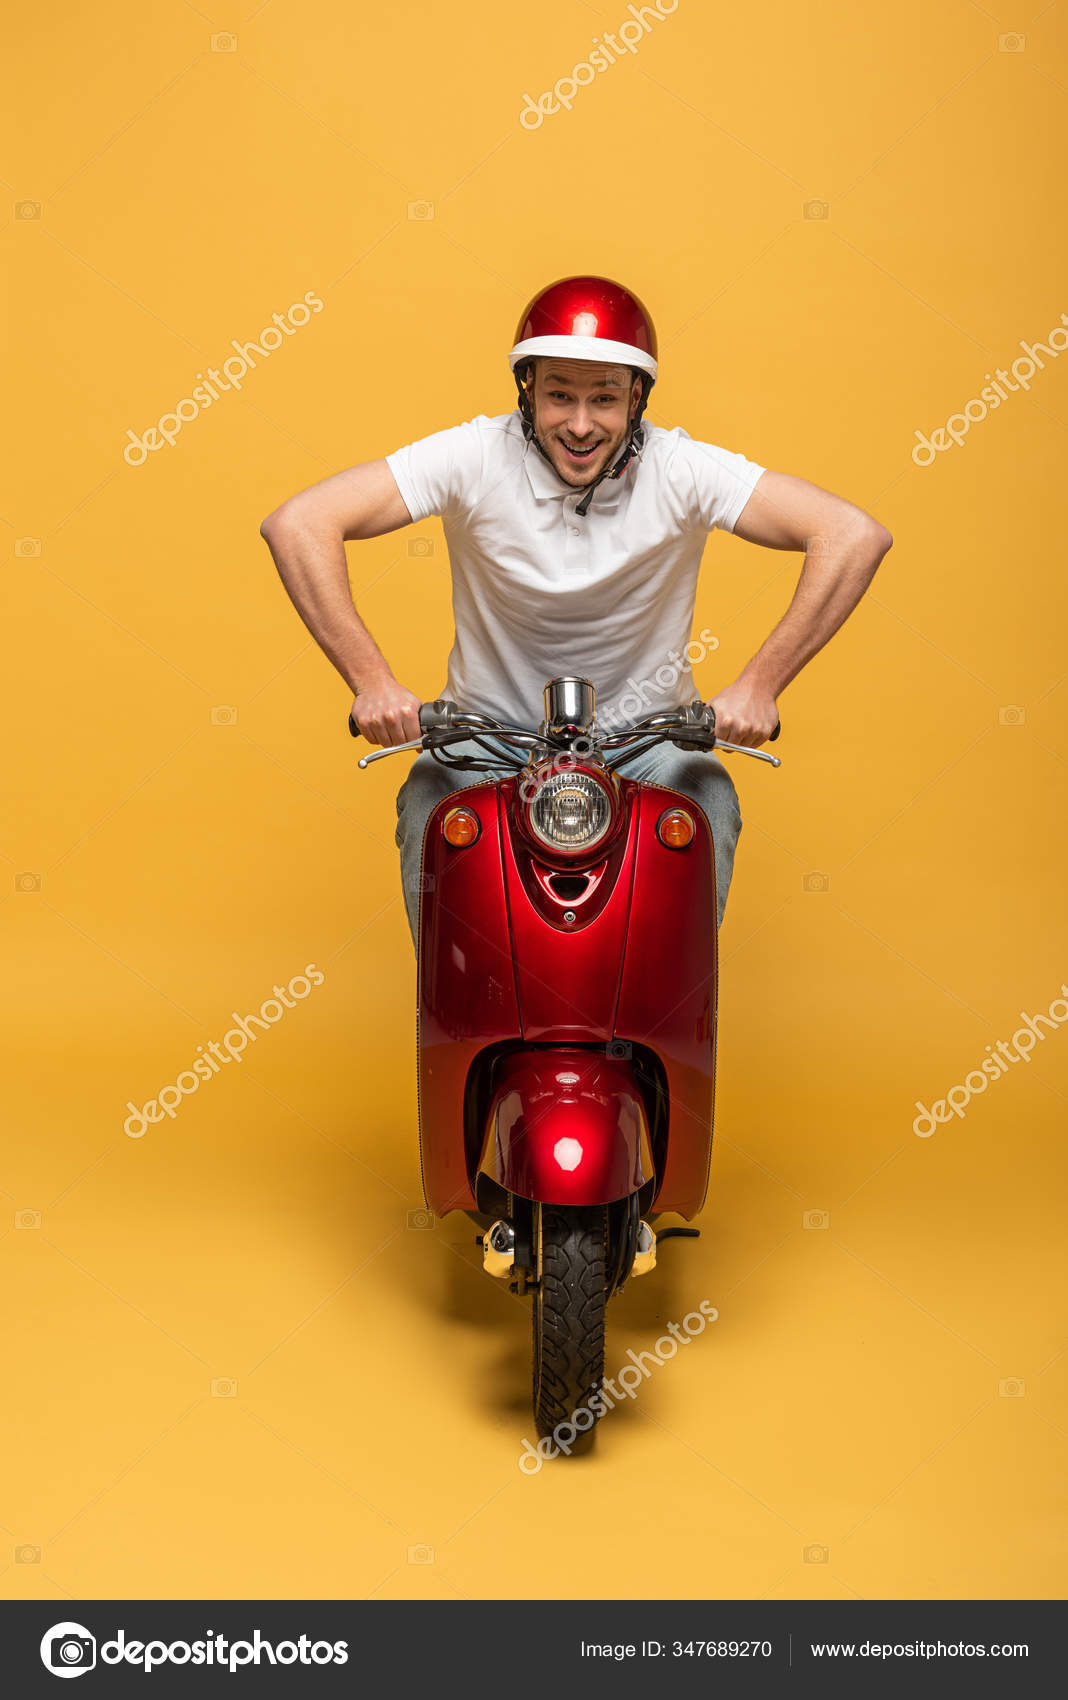 Happy Delivery Man Helmet Riding Scooter Yellow Background Stock Photo Image By C Haydmitriy 347689270